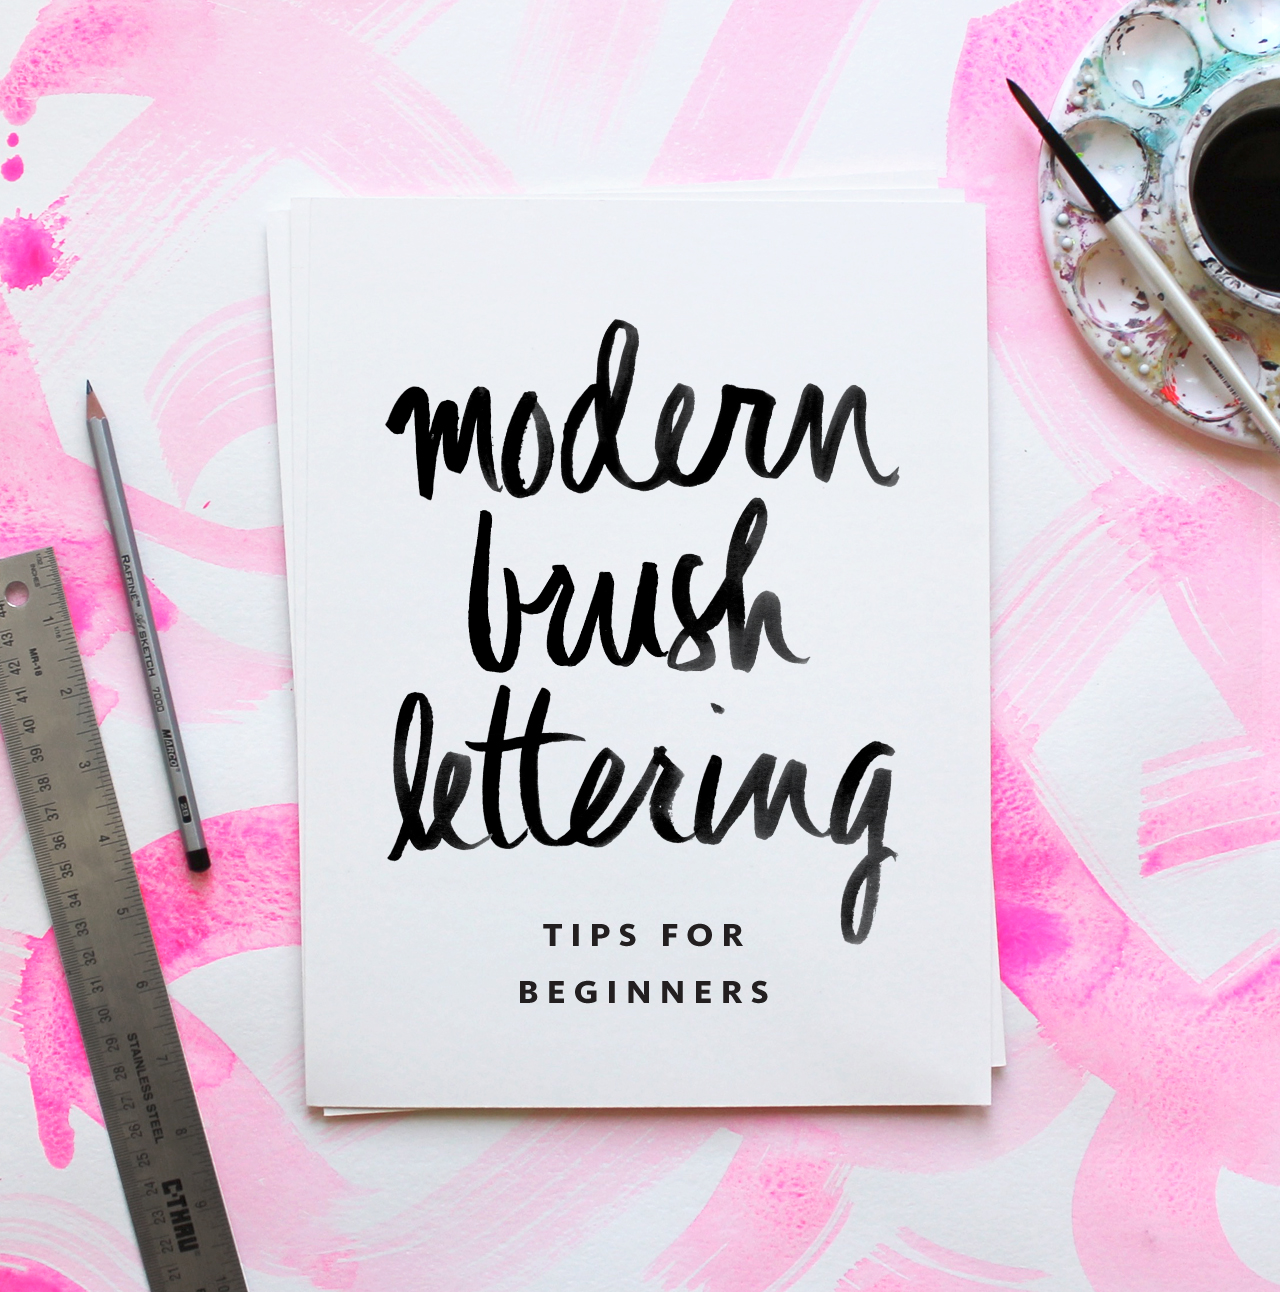 Modern Brush Lettering Tips for Beginners from Fine Day Press / Oh So Beautiful Paper